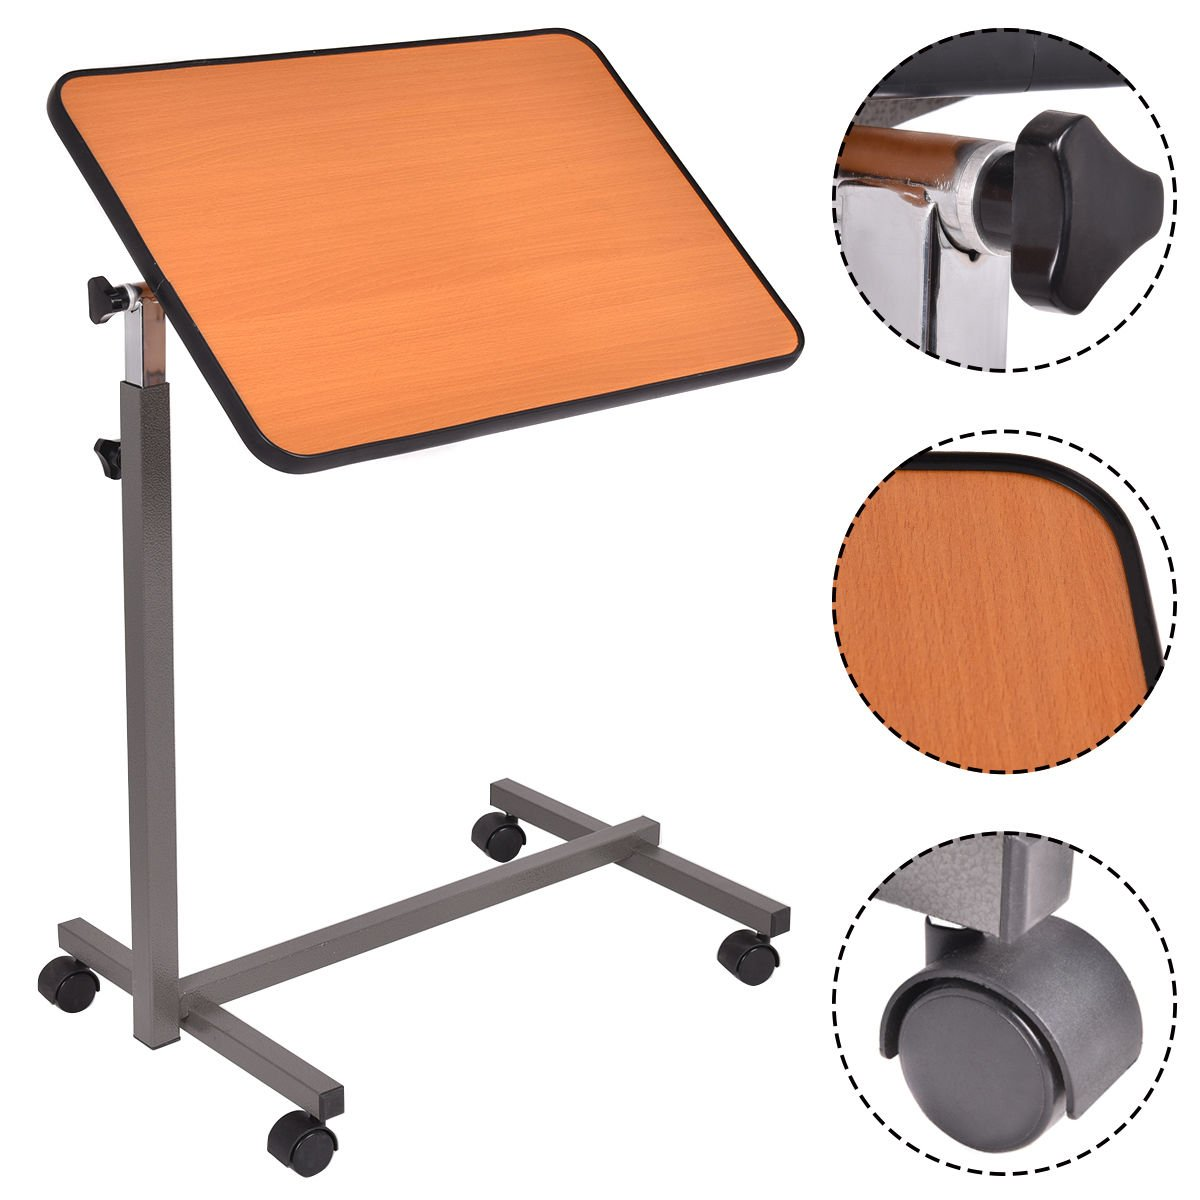 KCHEX>Overbed Rolling Table Over Bed Laptop Food Tray Hospital Desk With Tilting Top>This is our brand new over bed table, which is ideal for eating, writing, playing games, or using your laptop while